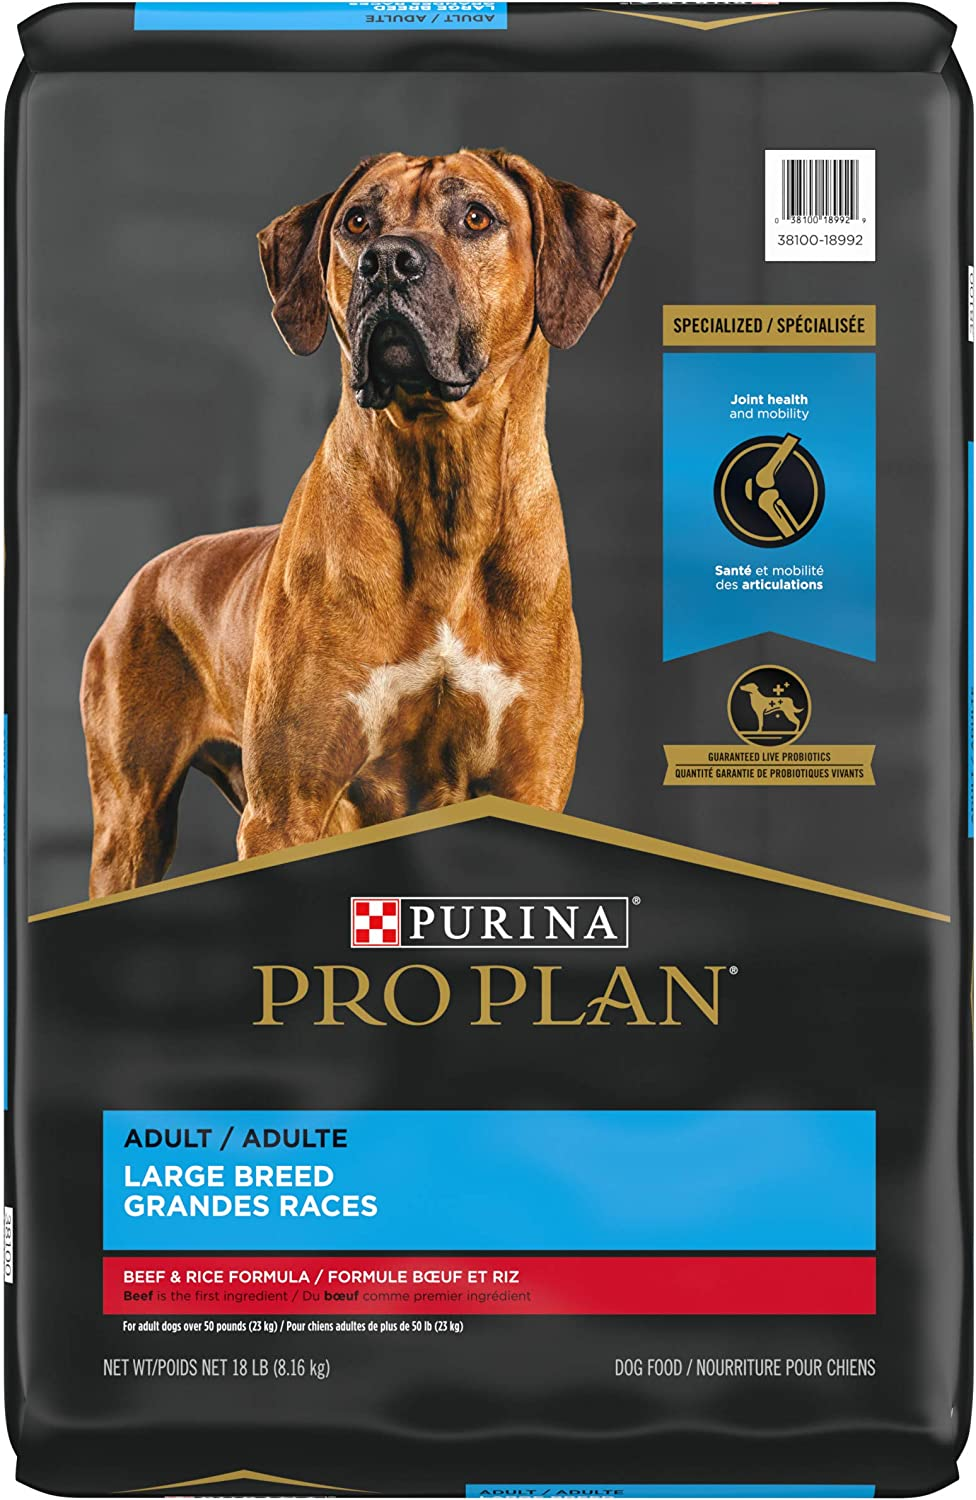 Purina Pro Plan Joint Health Large Breed Dog Food with Probiotics for Dogs, Beef & Rice Formula - 18 lb. Bag